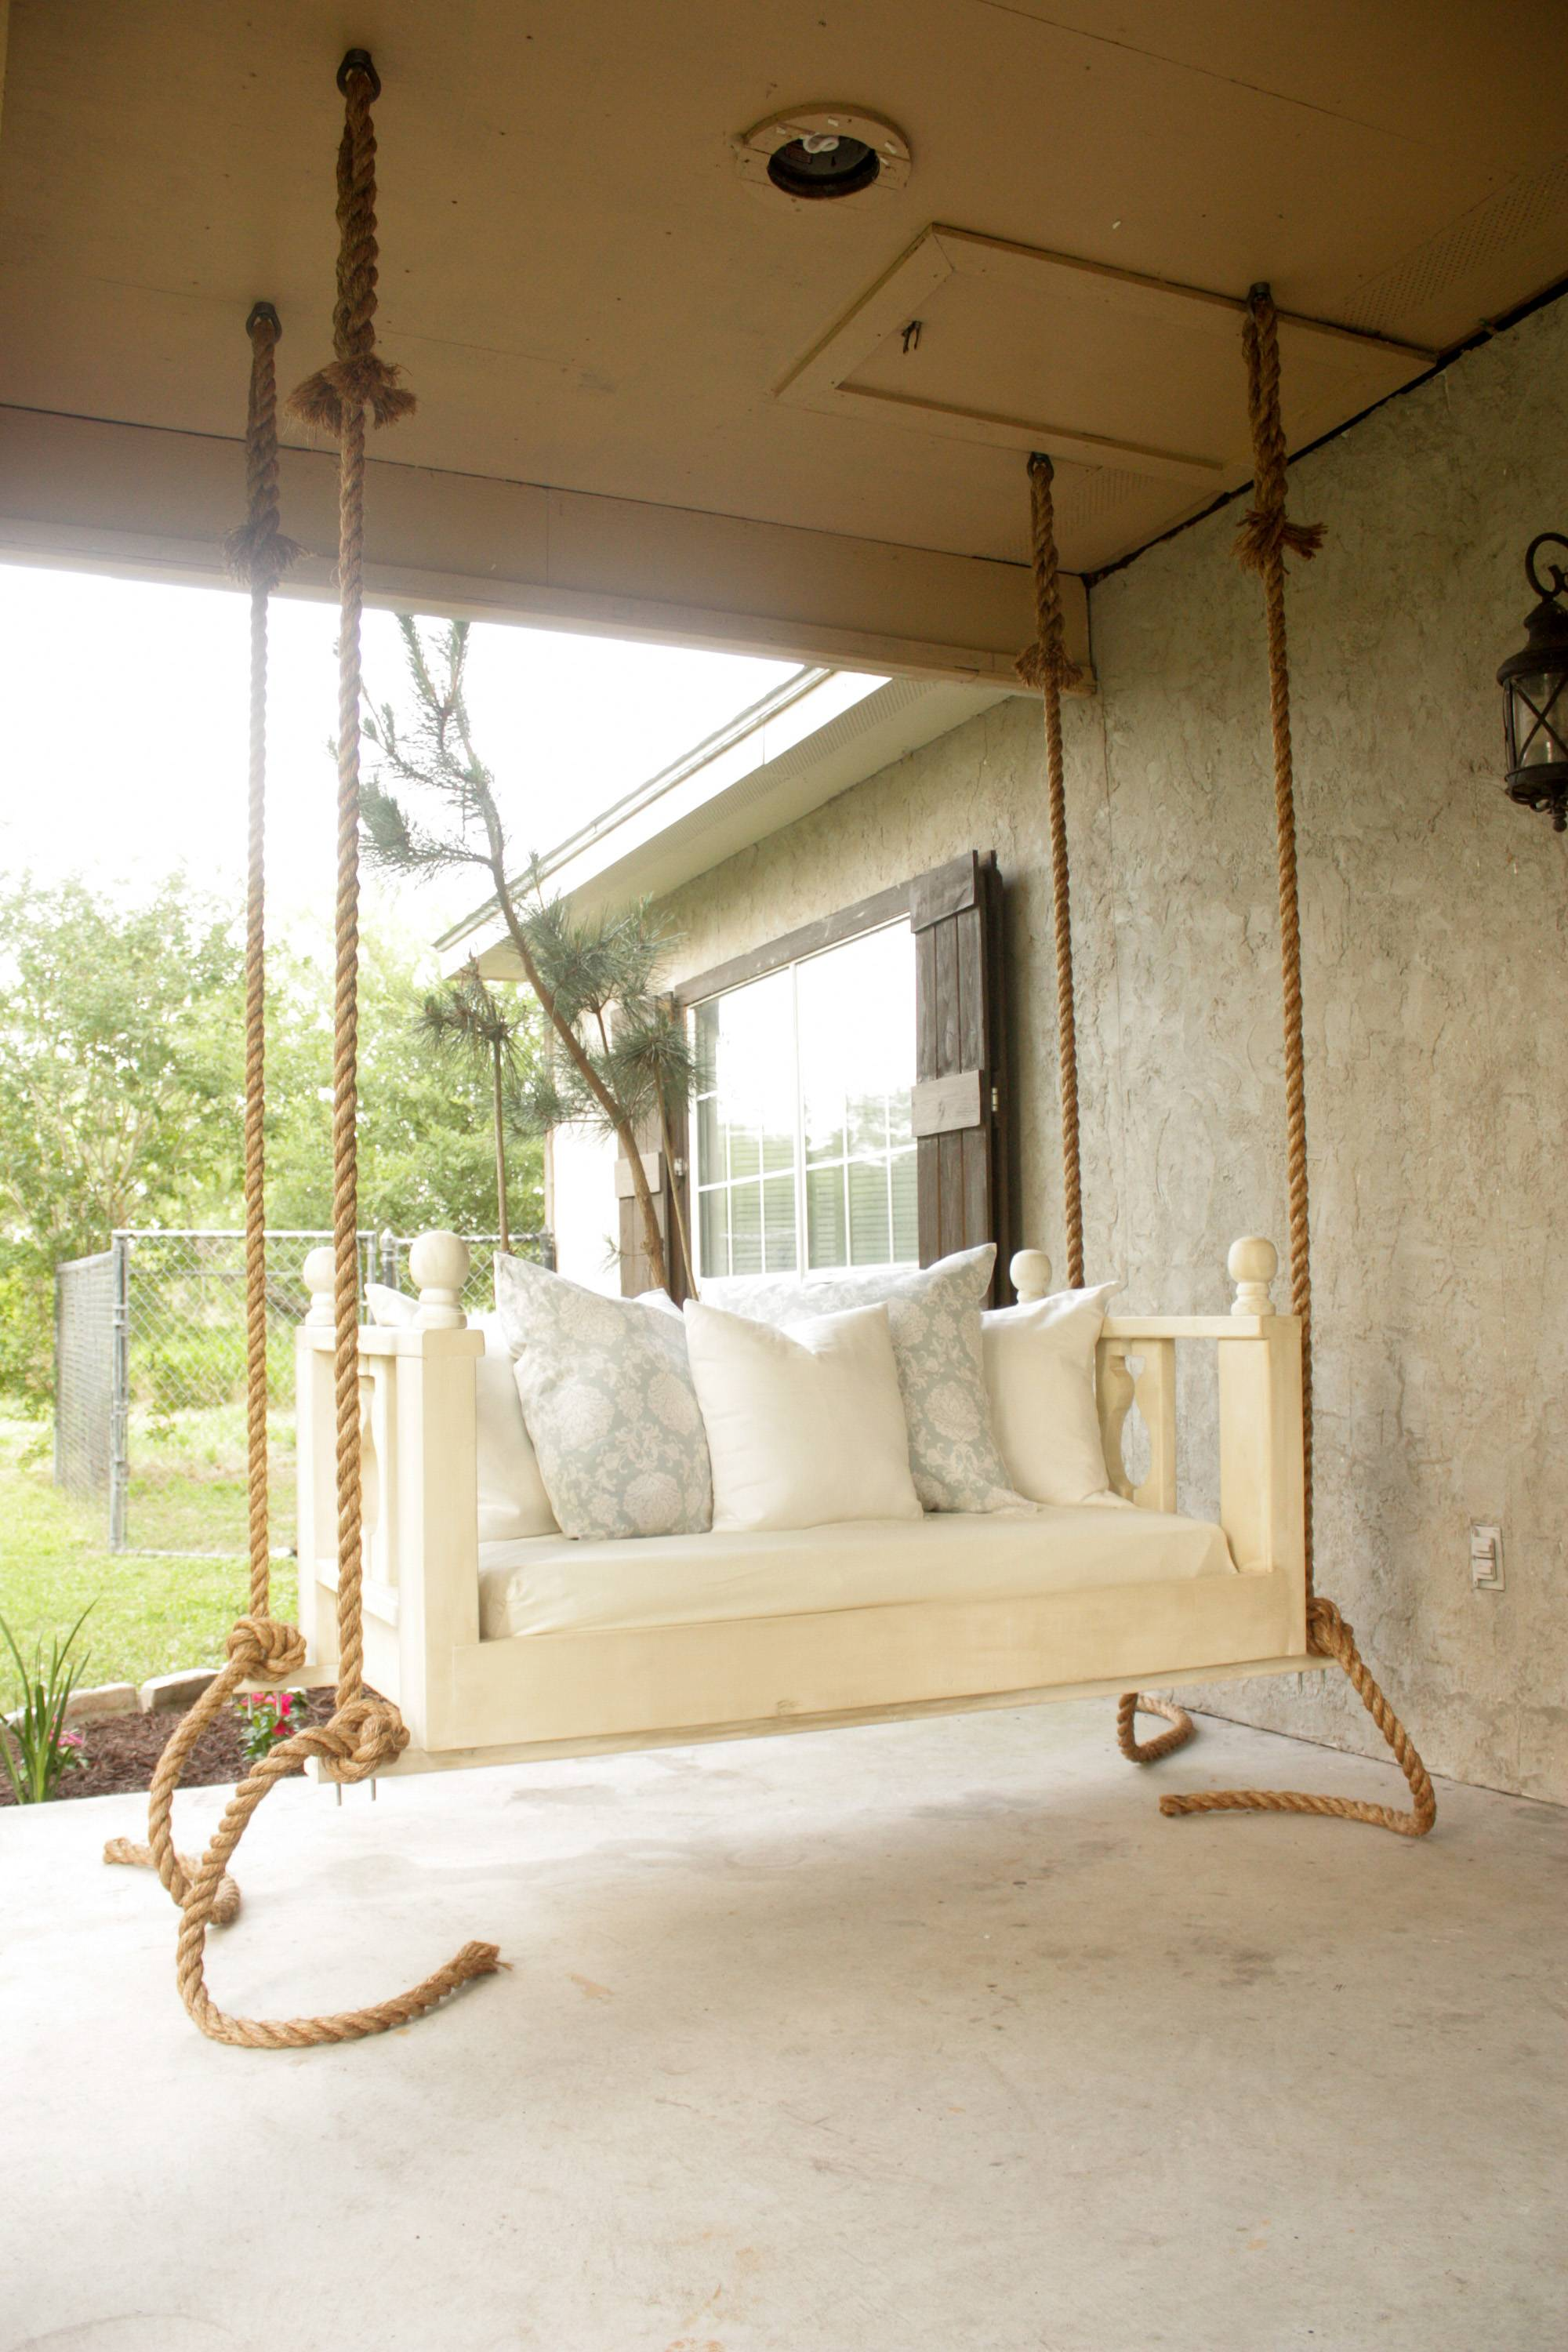 DIY Porch Bed Swing9 1 of 1